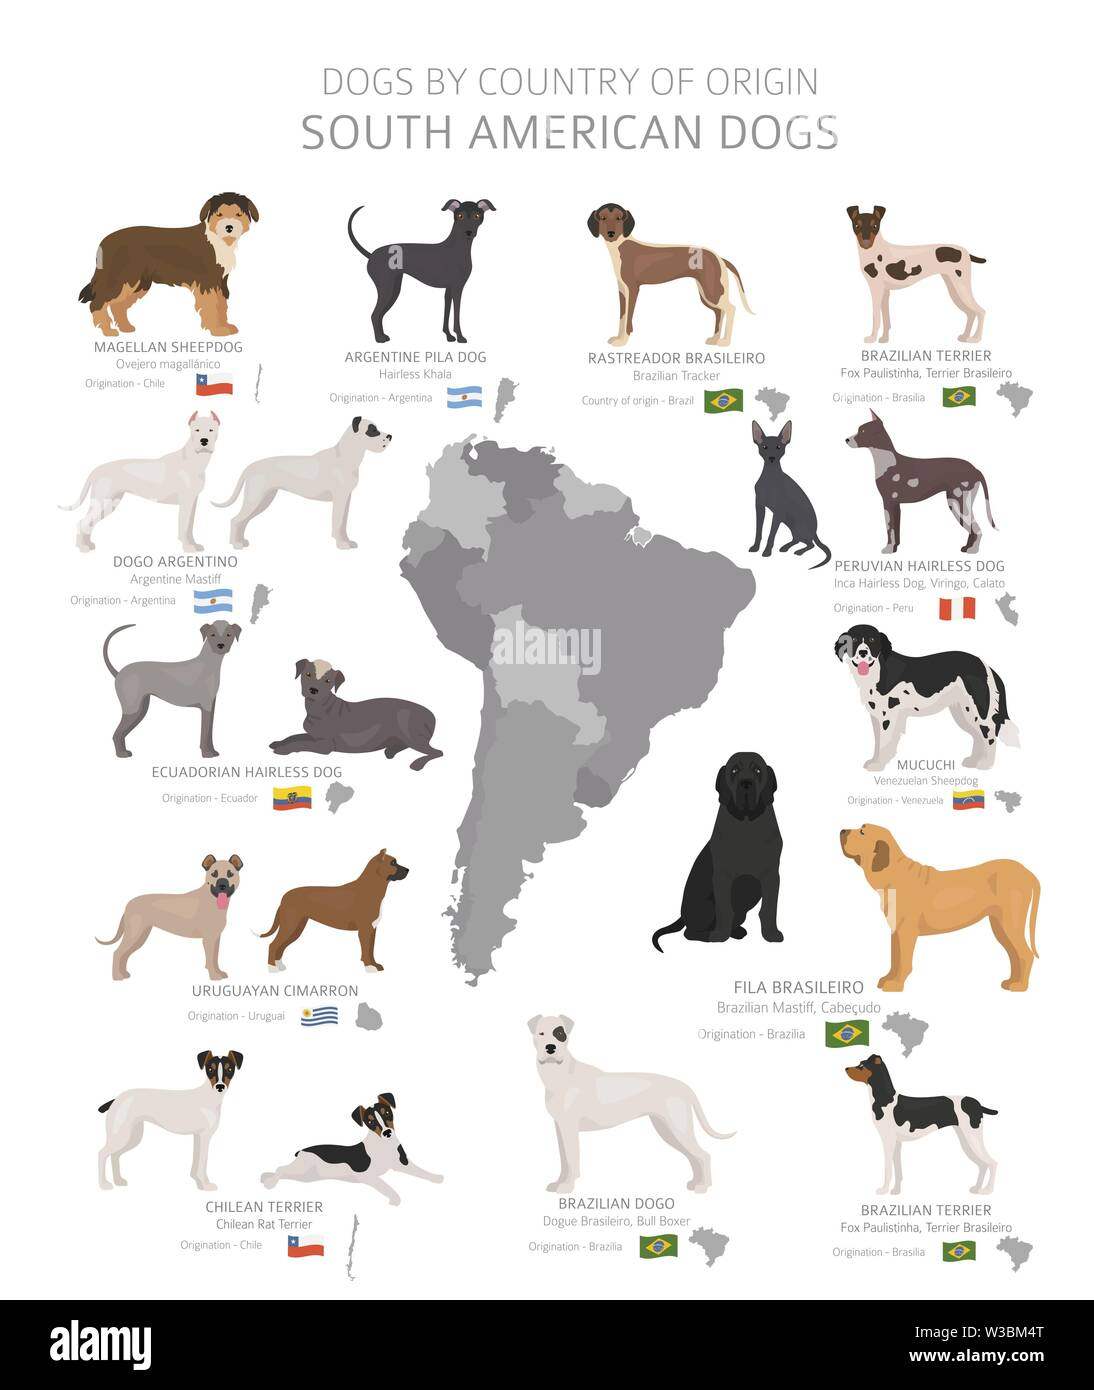 Dogs by country of origin. South American dog breeds. Shepherds, hunting, herding, toy, working and service dogs  set.  Vector illustration - Stock Image